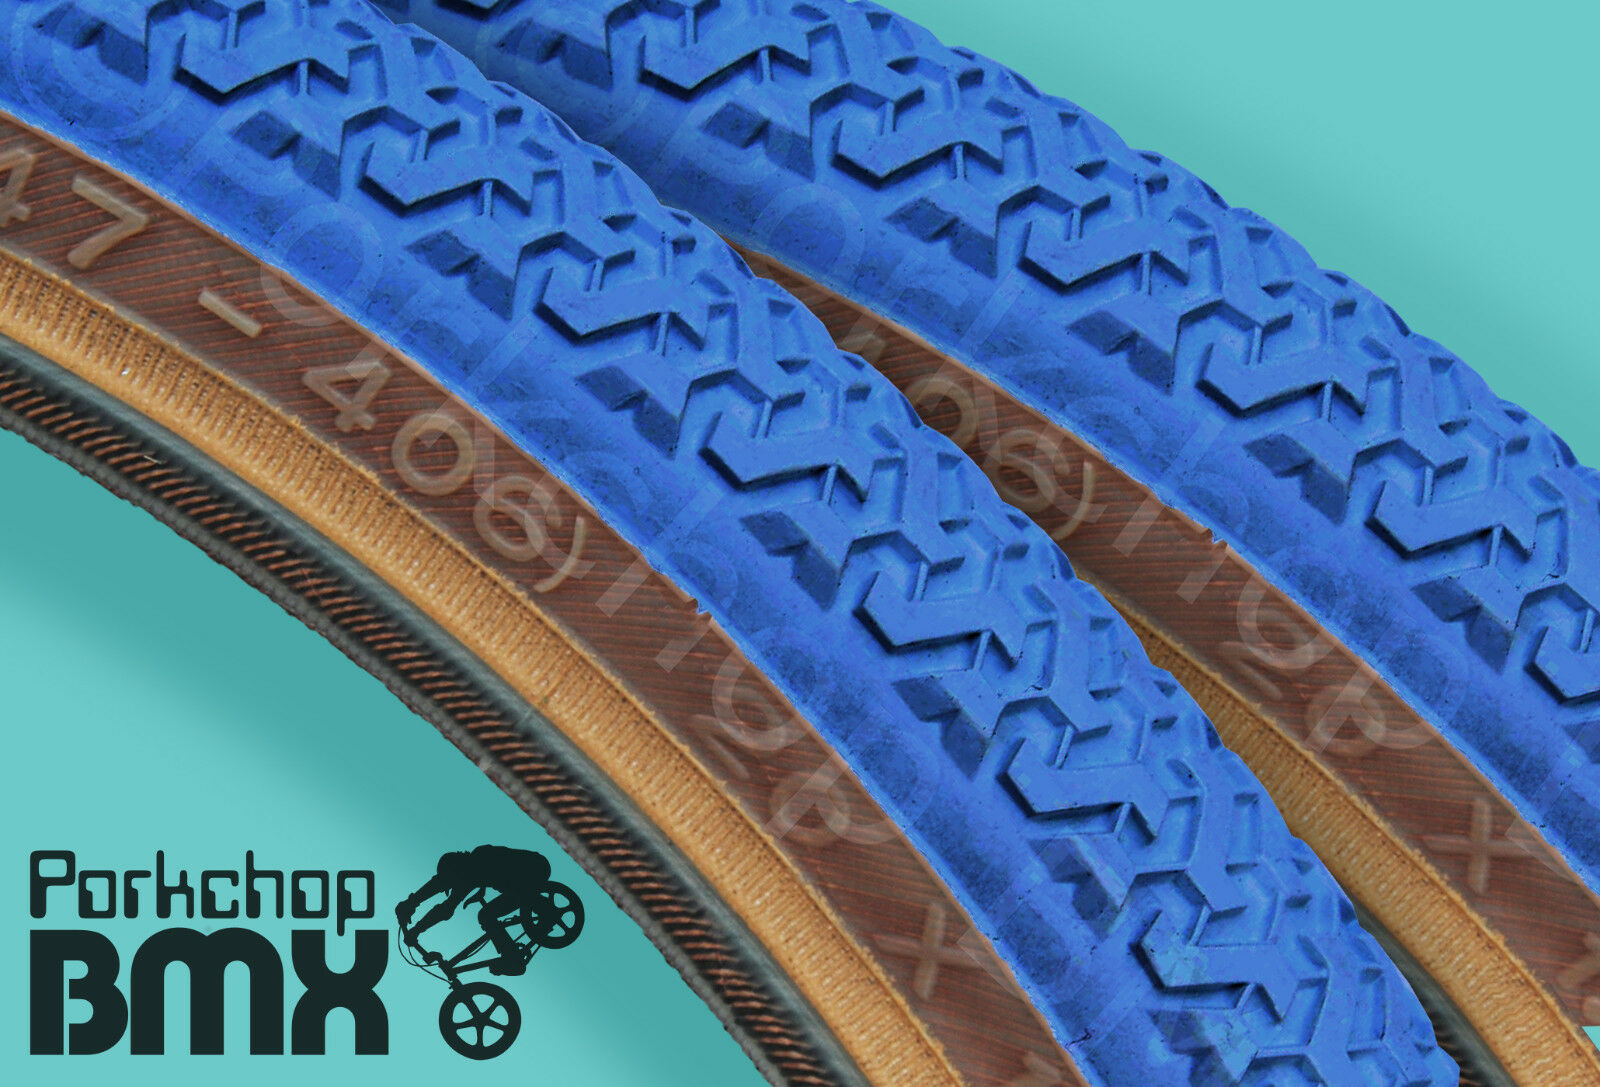 Kenda K55 freestyle old school BMX skinwall gumwall tires PAIR  20  X 1.75  blueE  free shipping & exchanges.